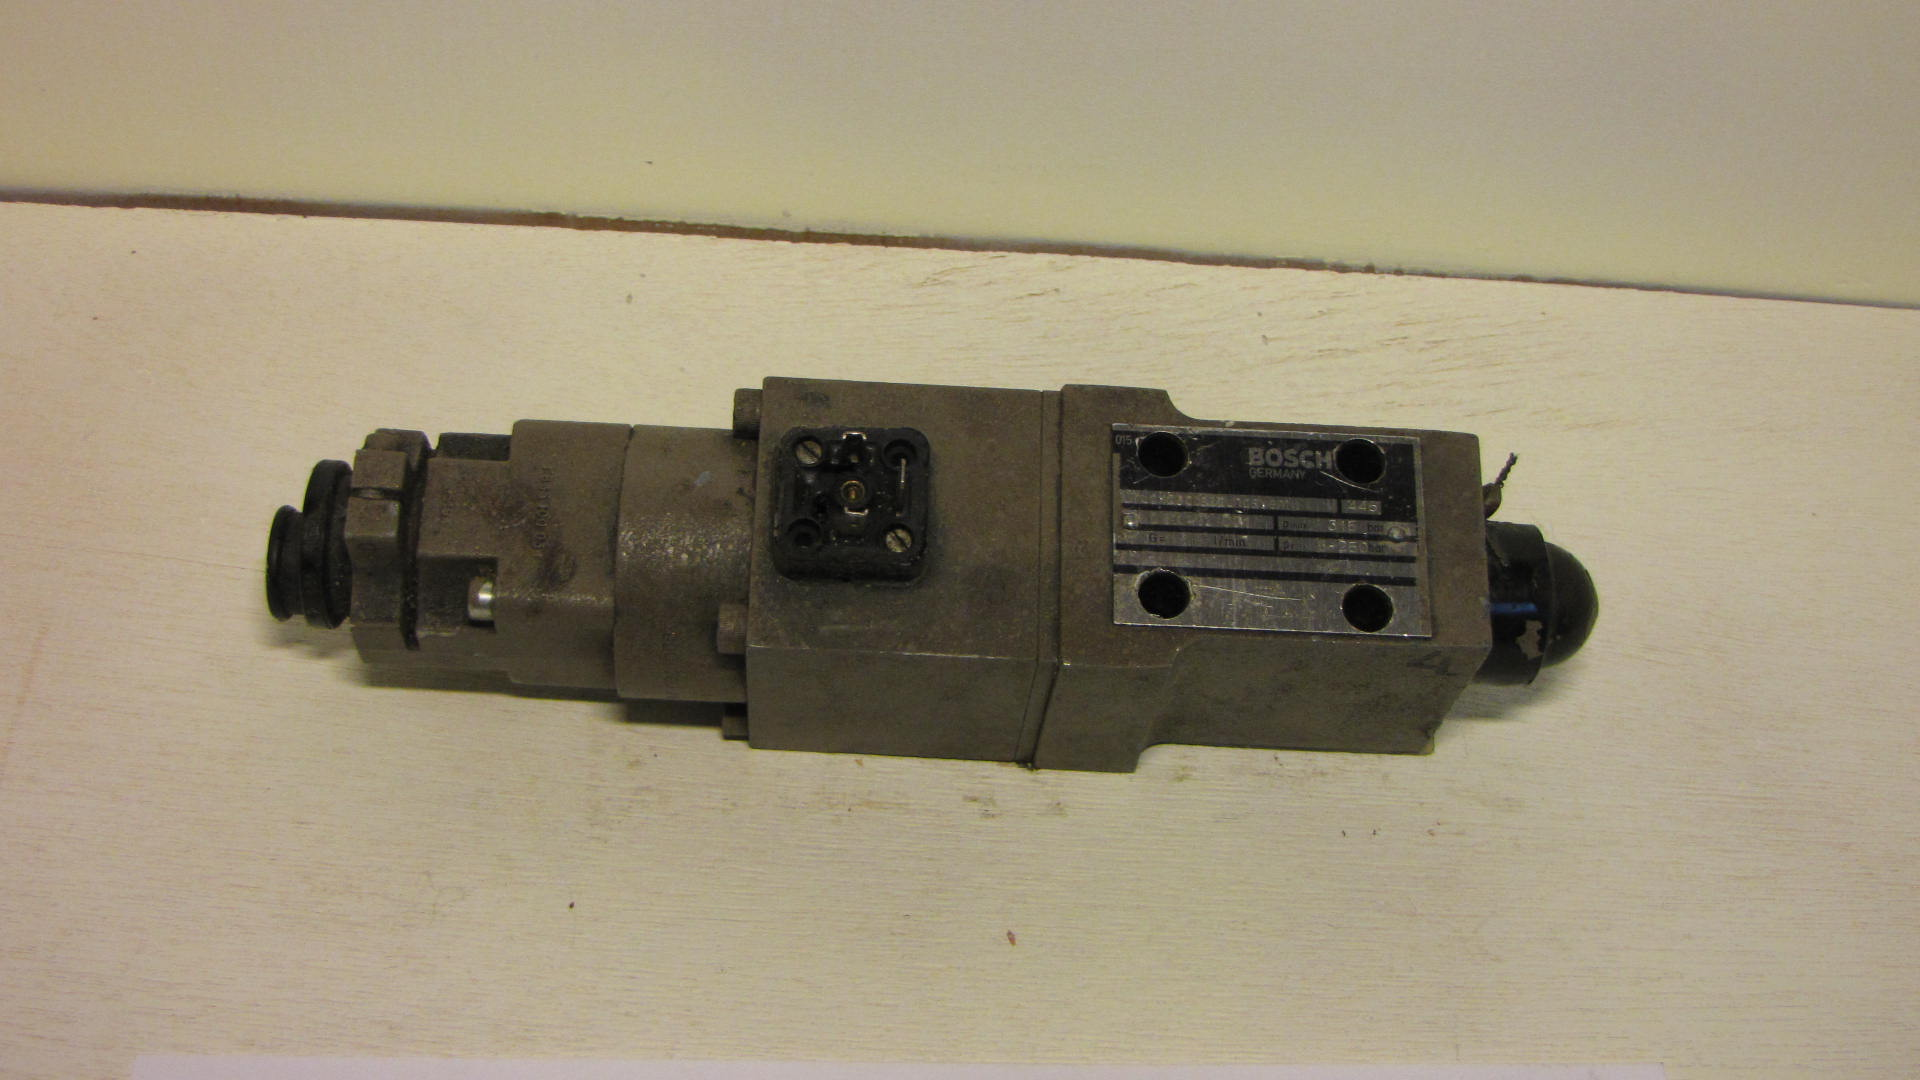 Bosch 0 811-400-001 propotional pressure valve